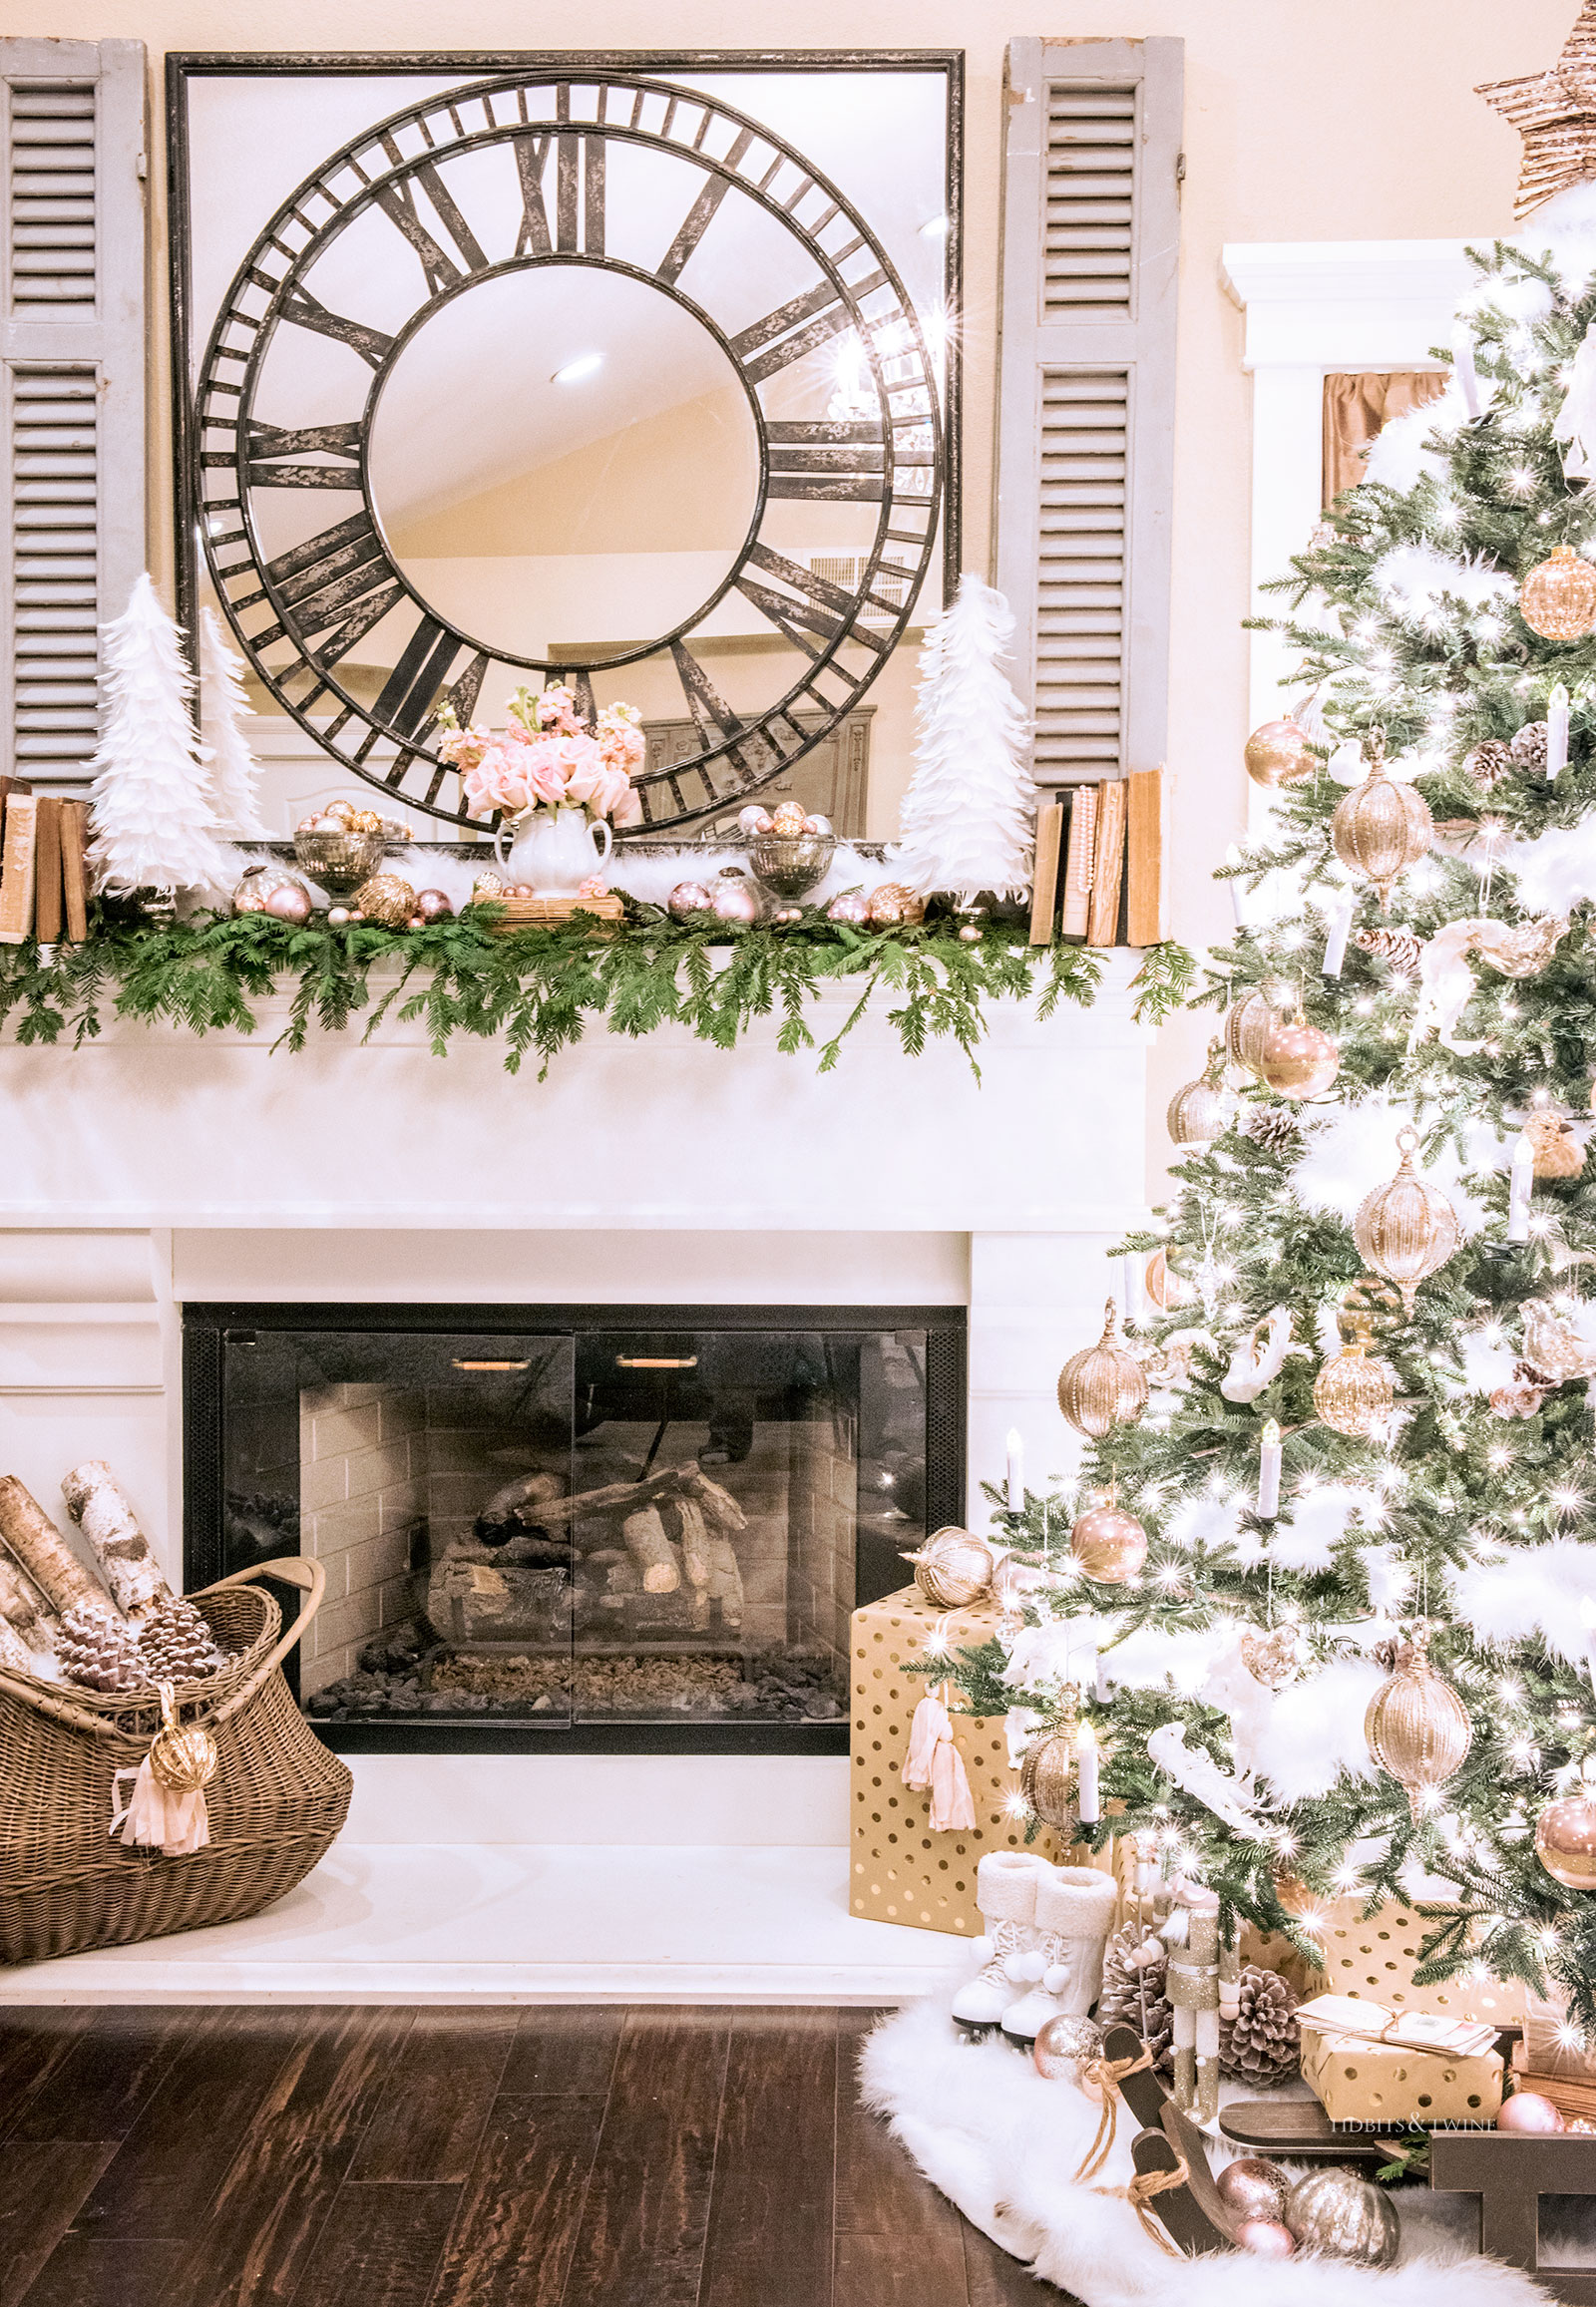 Bedroom mantel decorated for Christmas in pink gold and white with a Christmas tree nearby